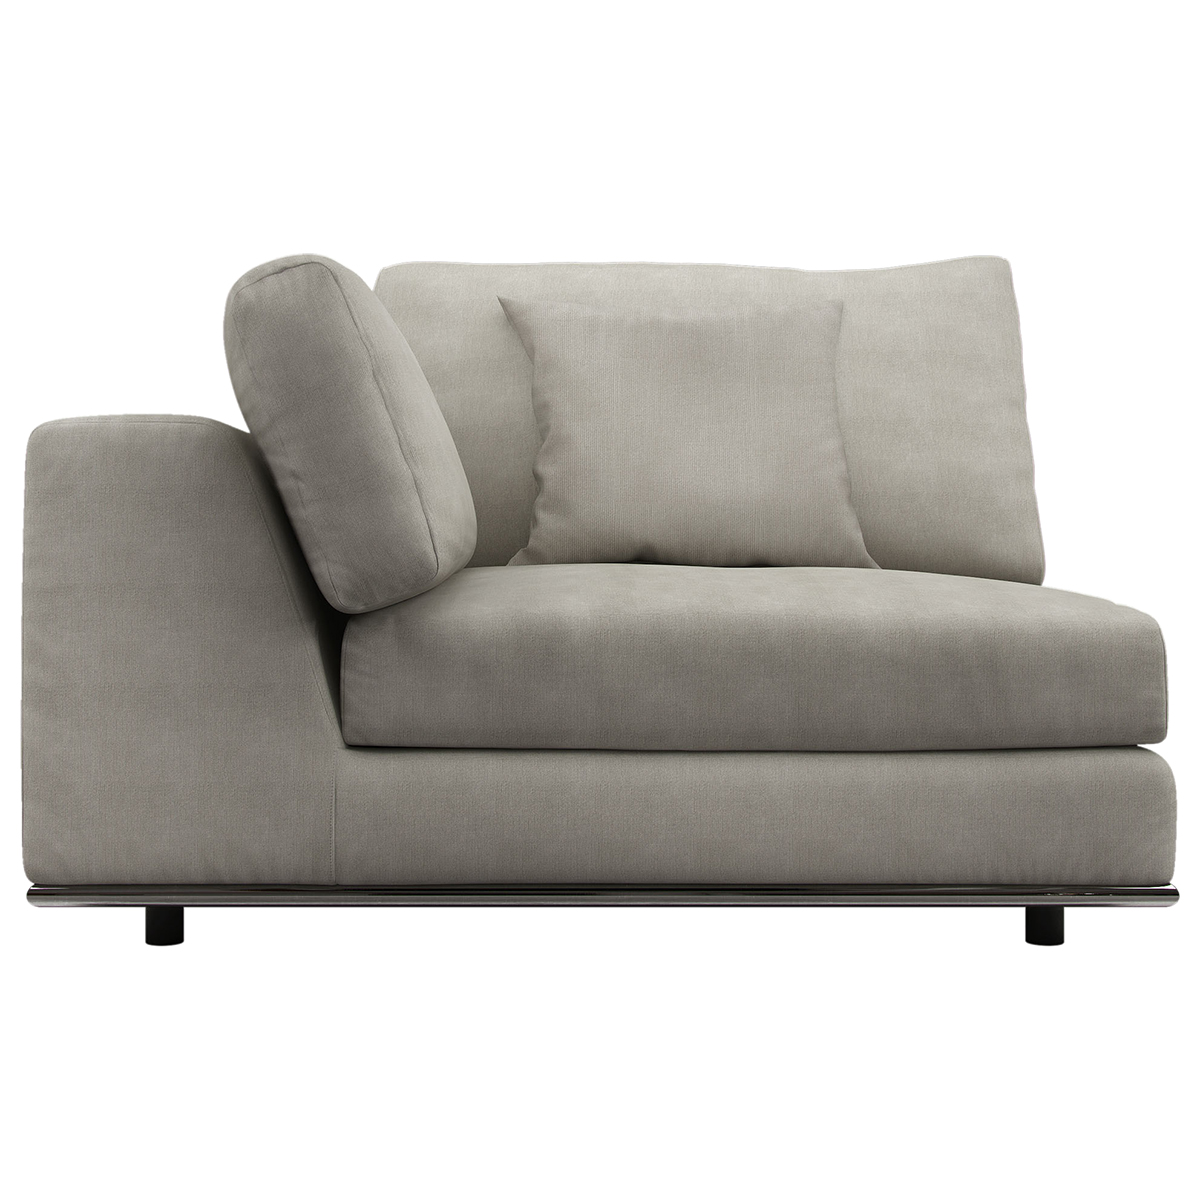 one arm sofa sectional sofas reviews perry 1 module